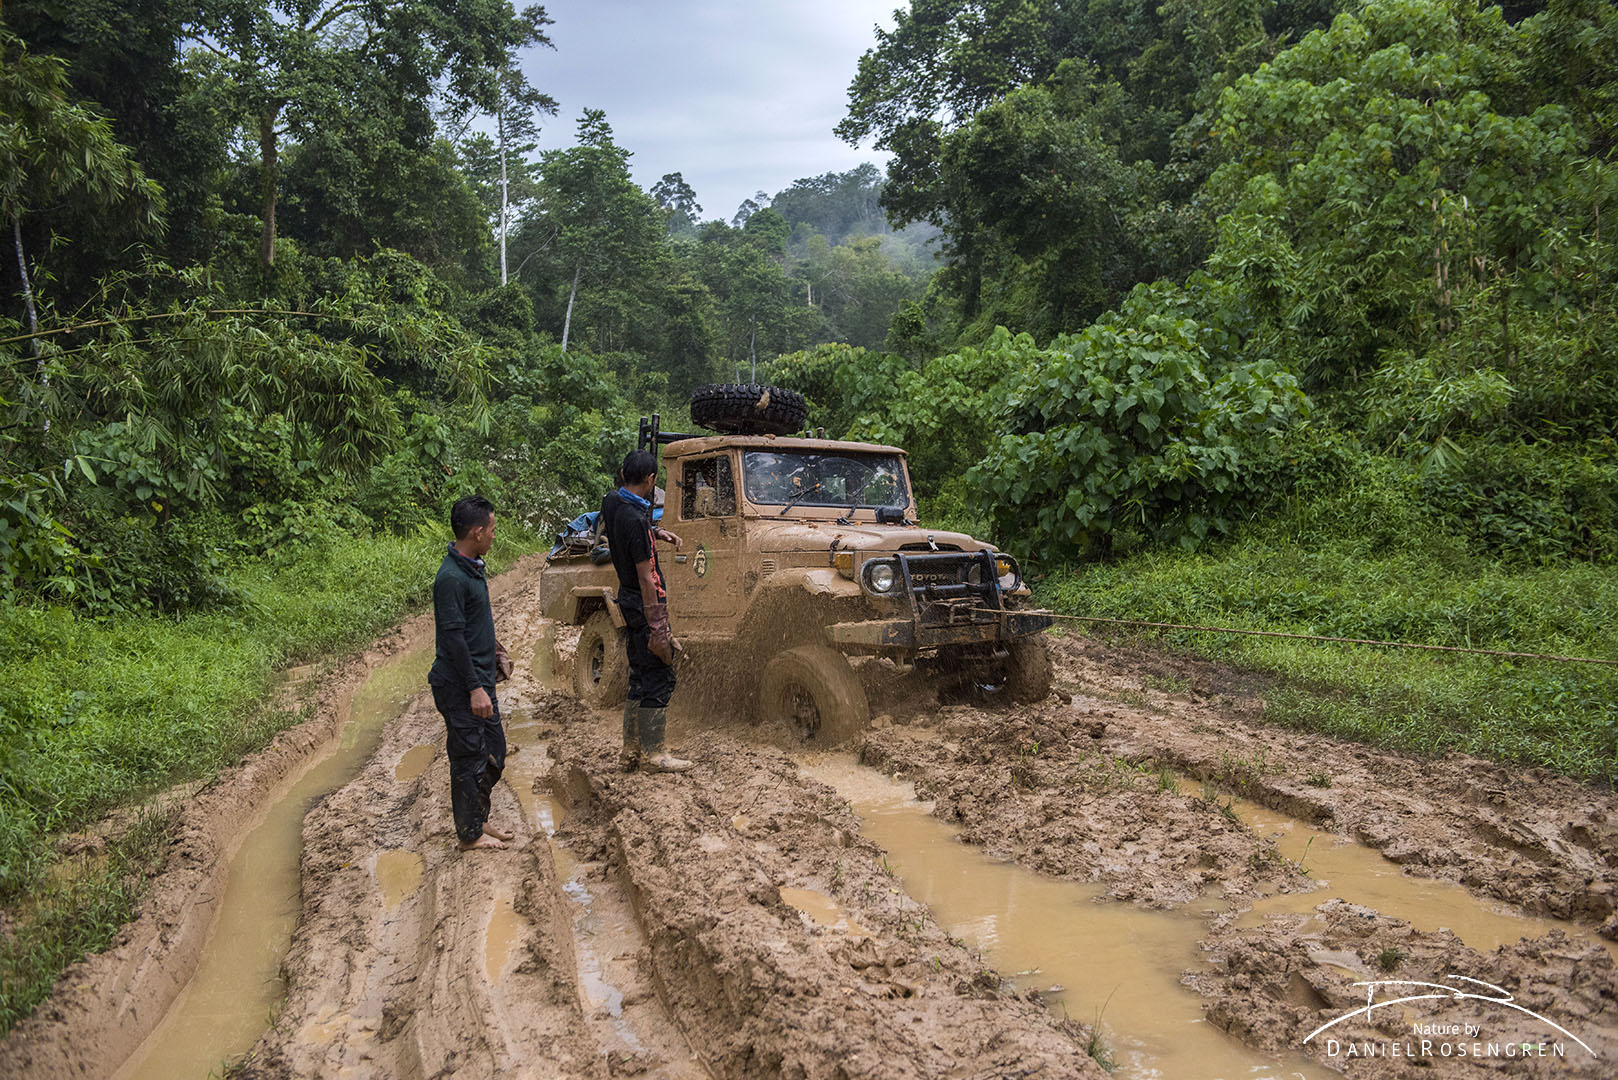 Getting to Bukit Tigapuluh involved lots and lots of mud, getting stuck in it, digging and winching ourselves out, multiple times. © Daniel Rosengren